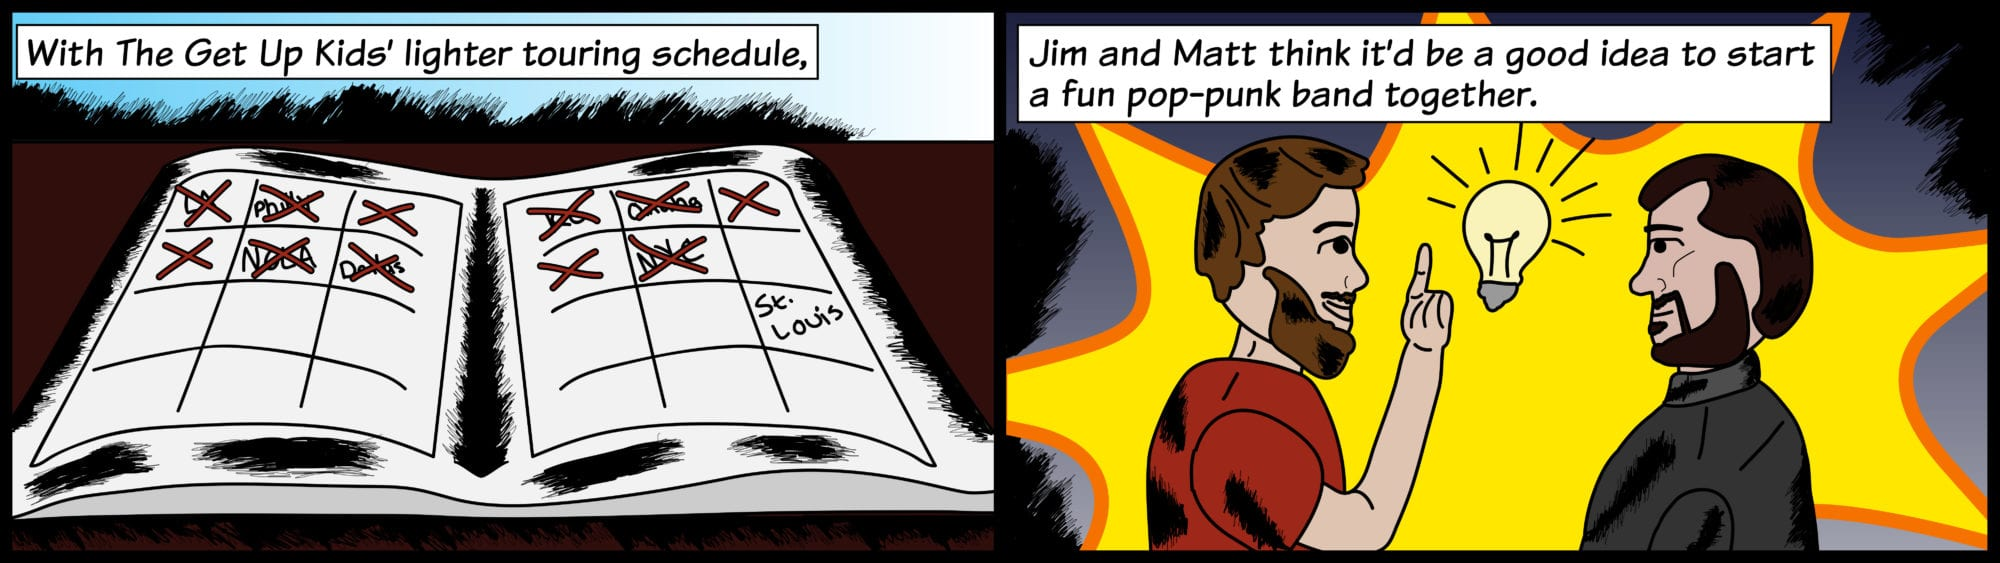 Jim and Matt join for a pop-punk band